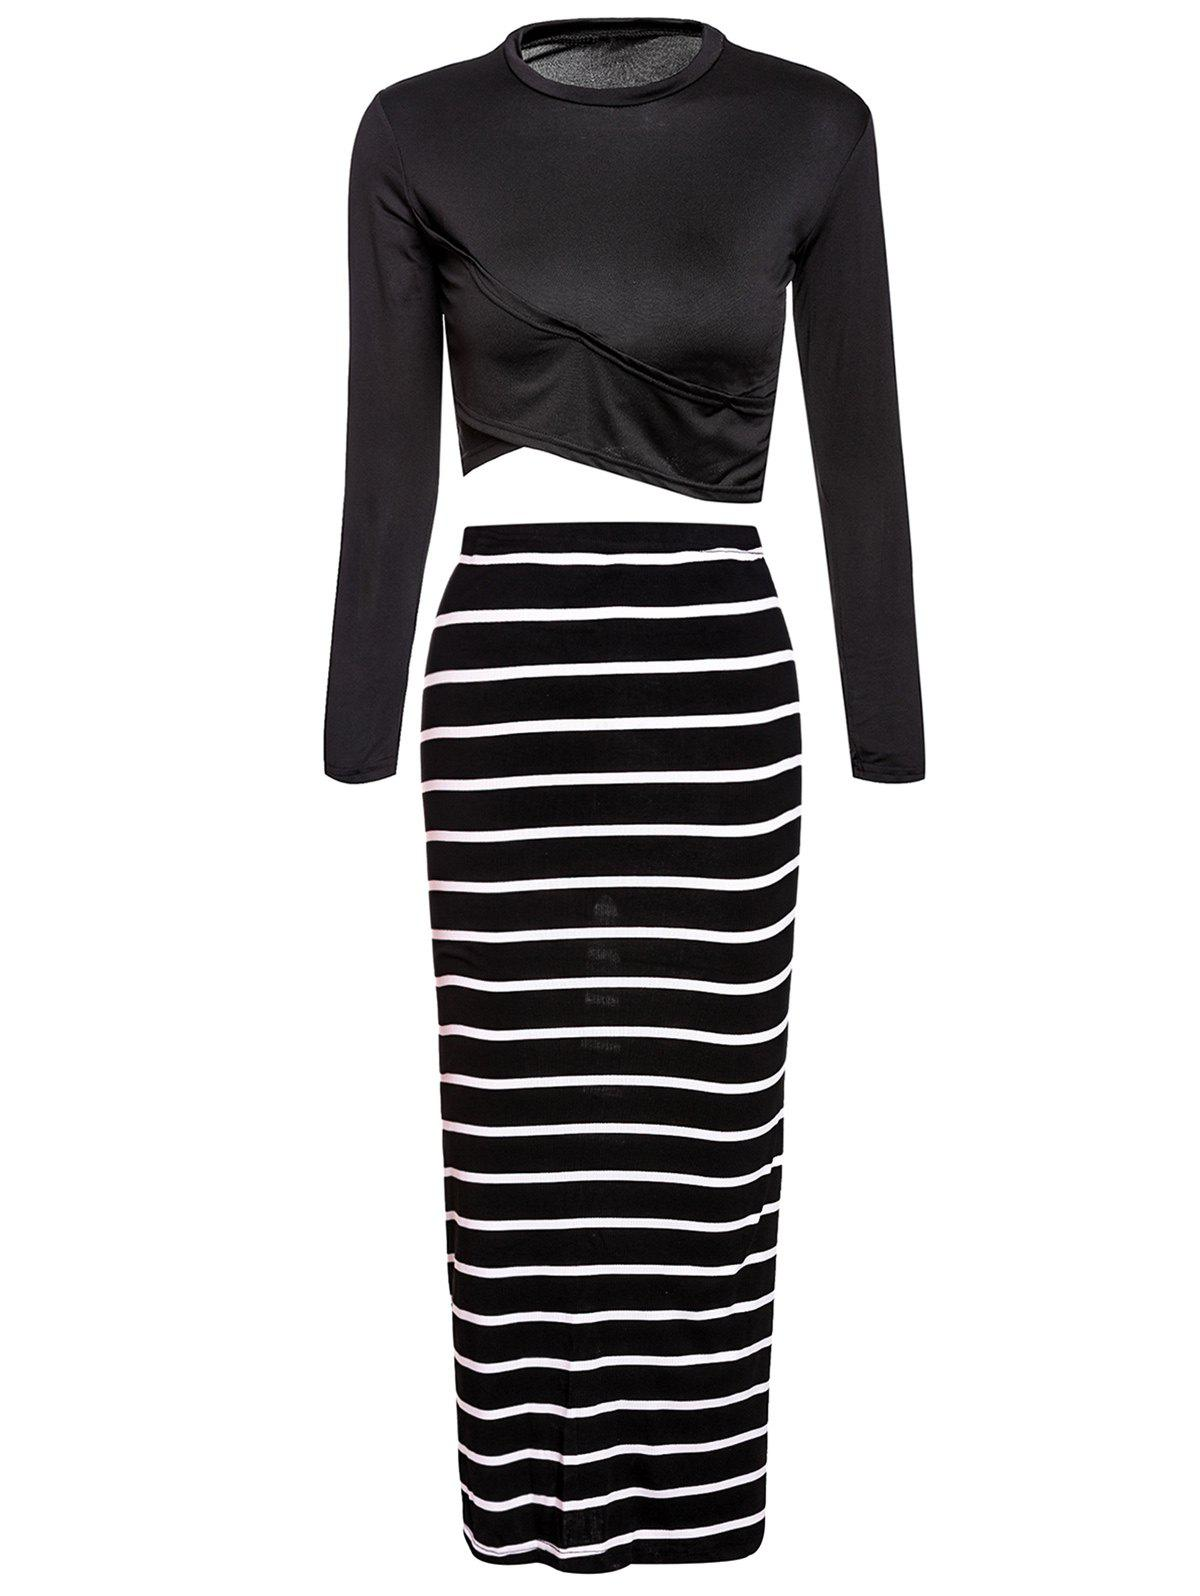 Turtle Neck Long Sleeve Crop Top + Striped Bodycon Skirt Women's Twinset - BLACK L